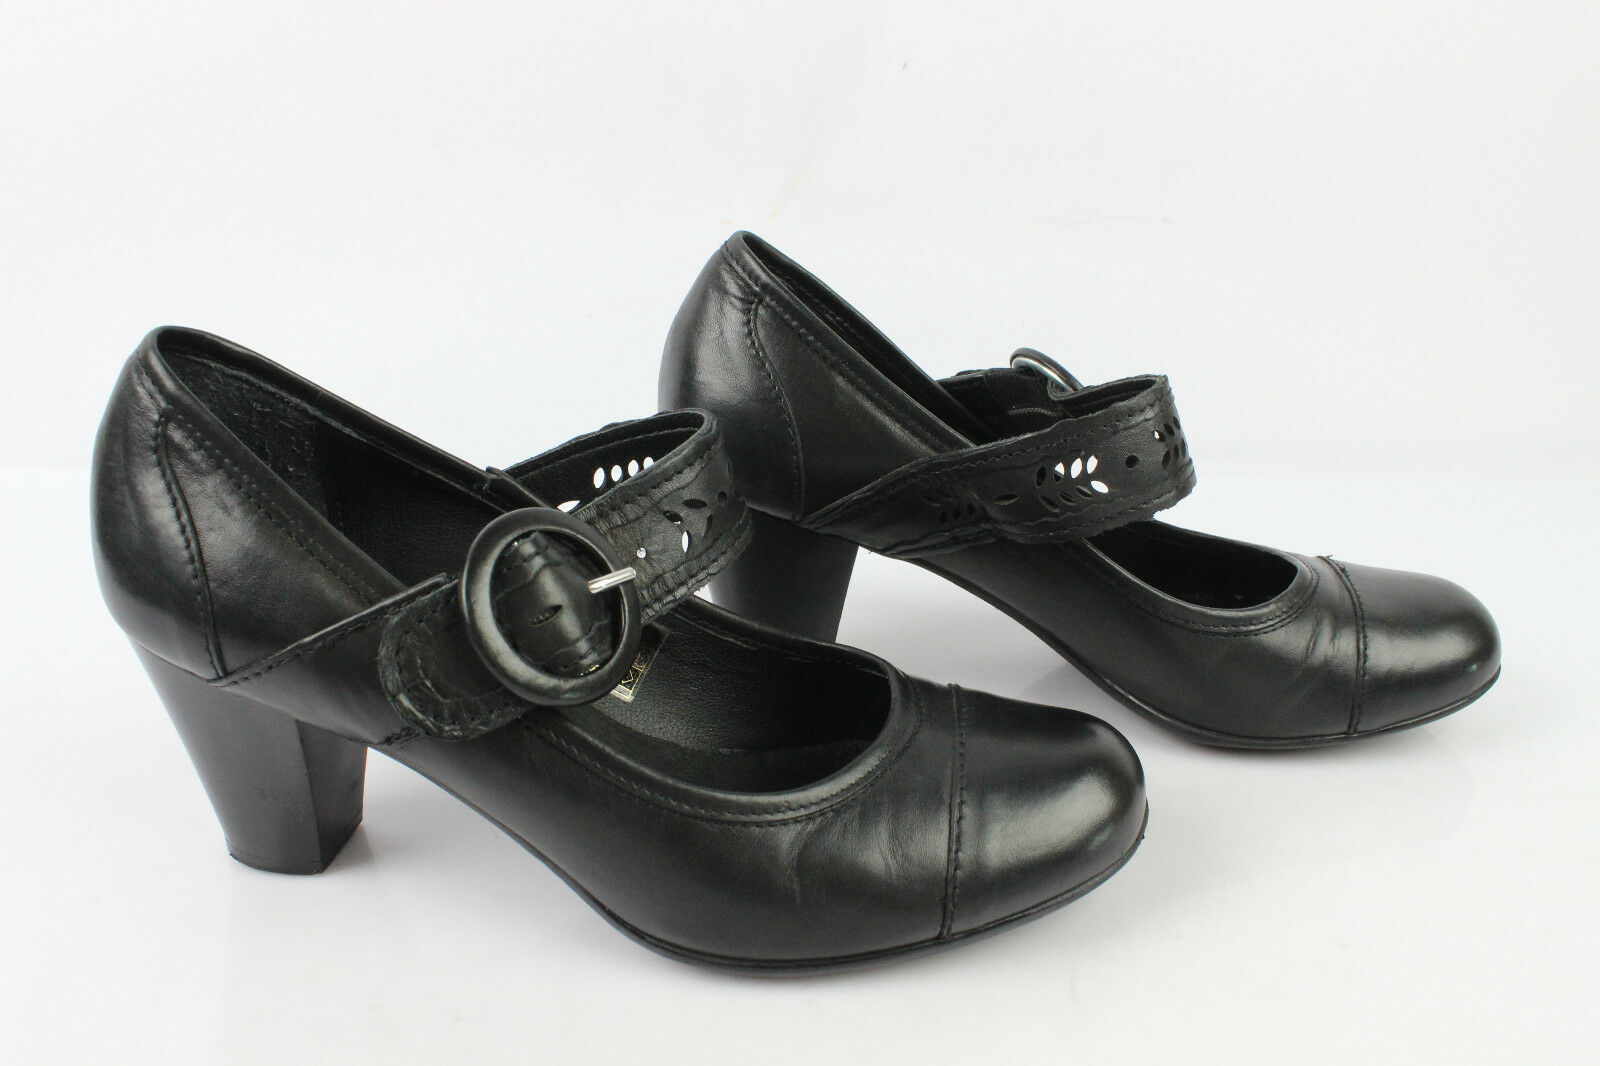 Court shoes flanged ANDRE Soles Freeflex Black Leather T 38 VERY GOOD CONDITION